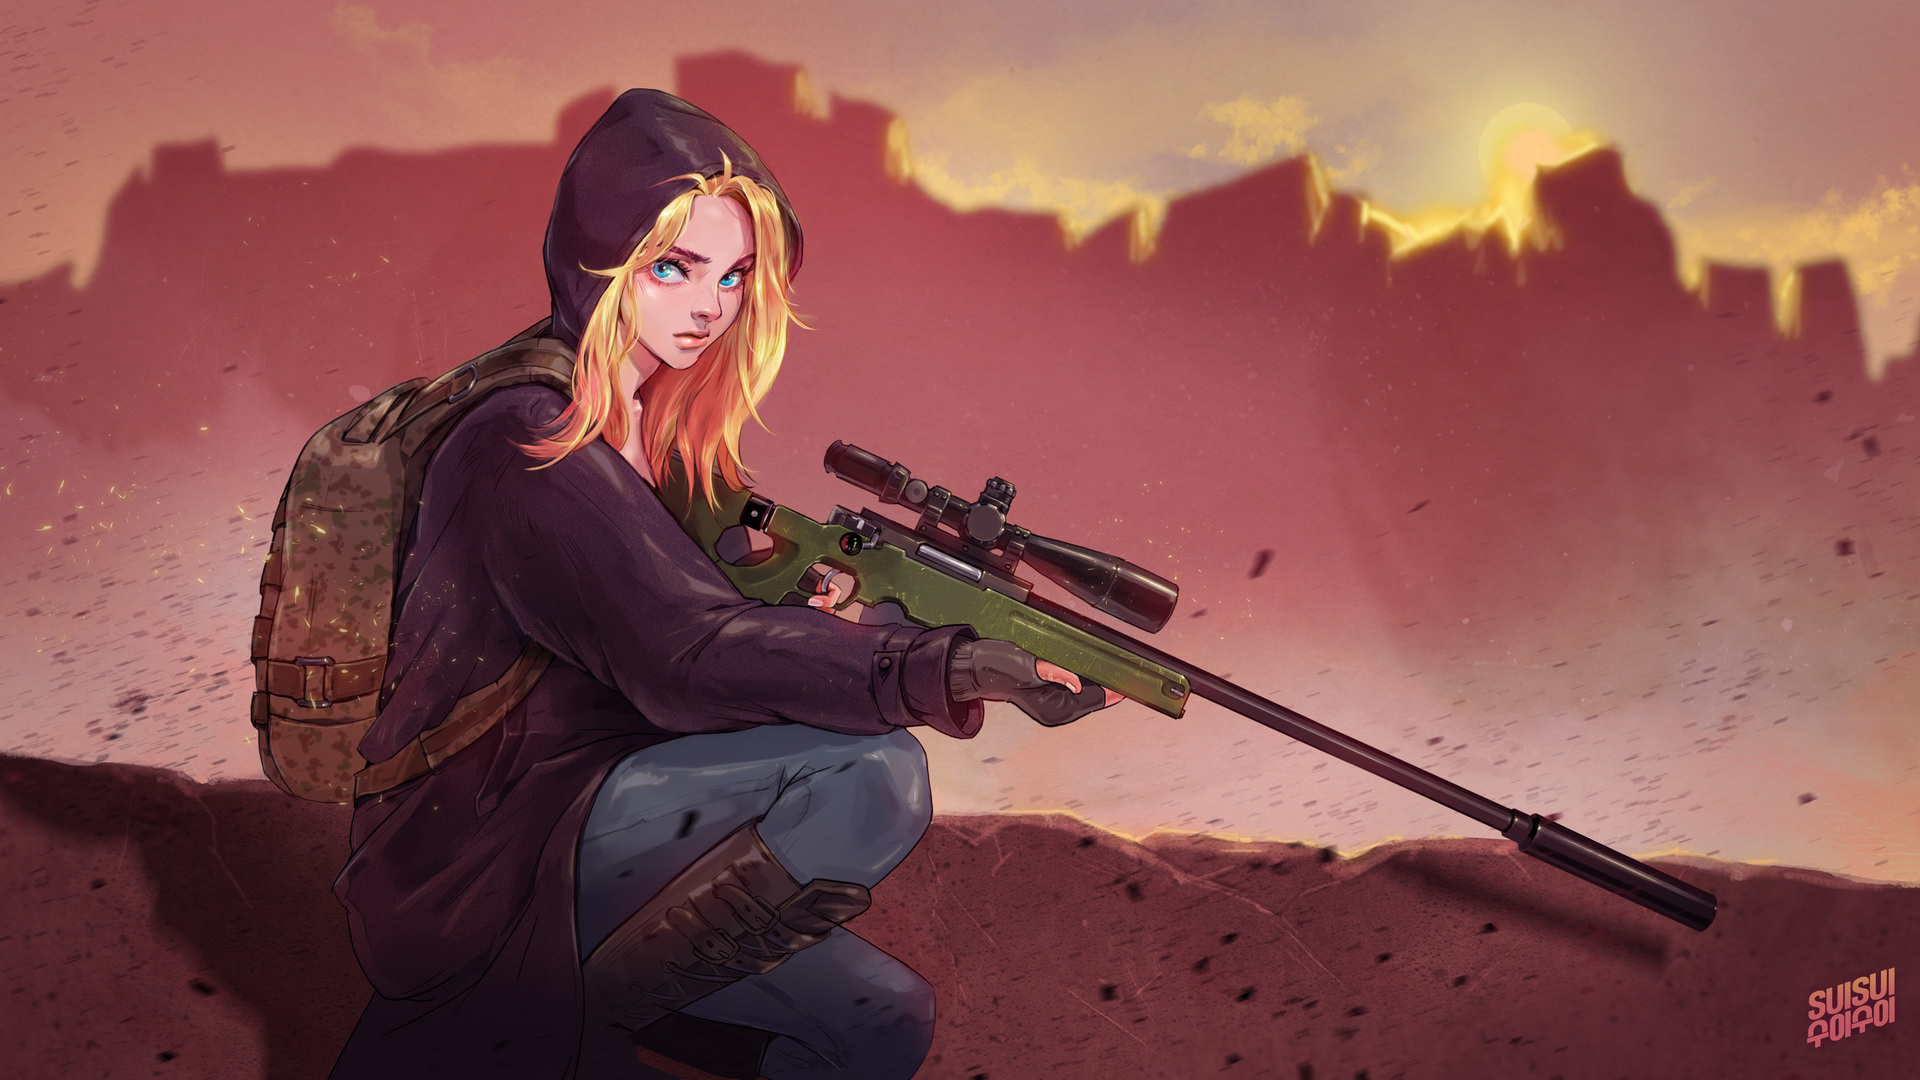 Pubg Wallpapers Hd 1080p: 1920x1080 Pubg Game Girl Fanart Laptop Full HD 1080P HD 4k